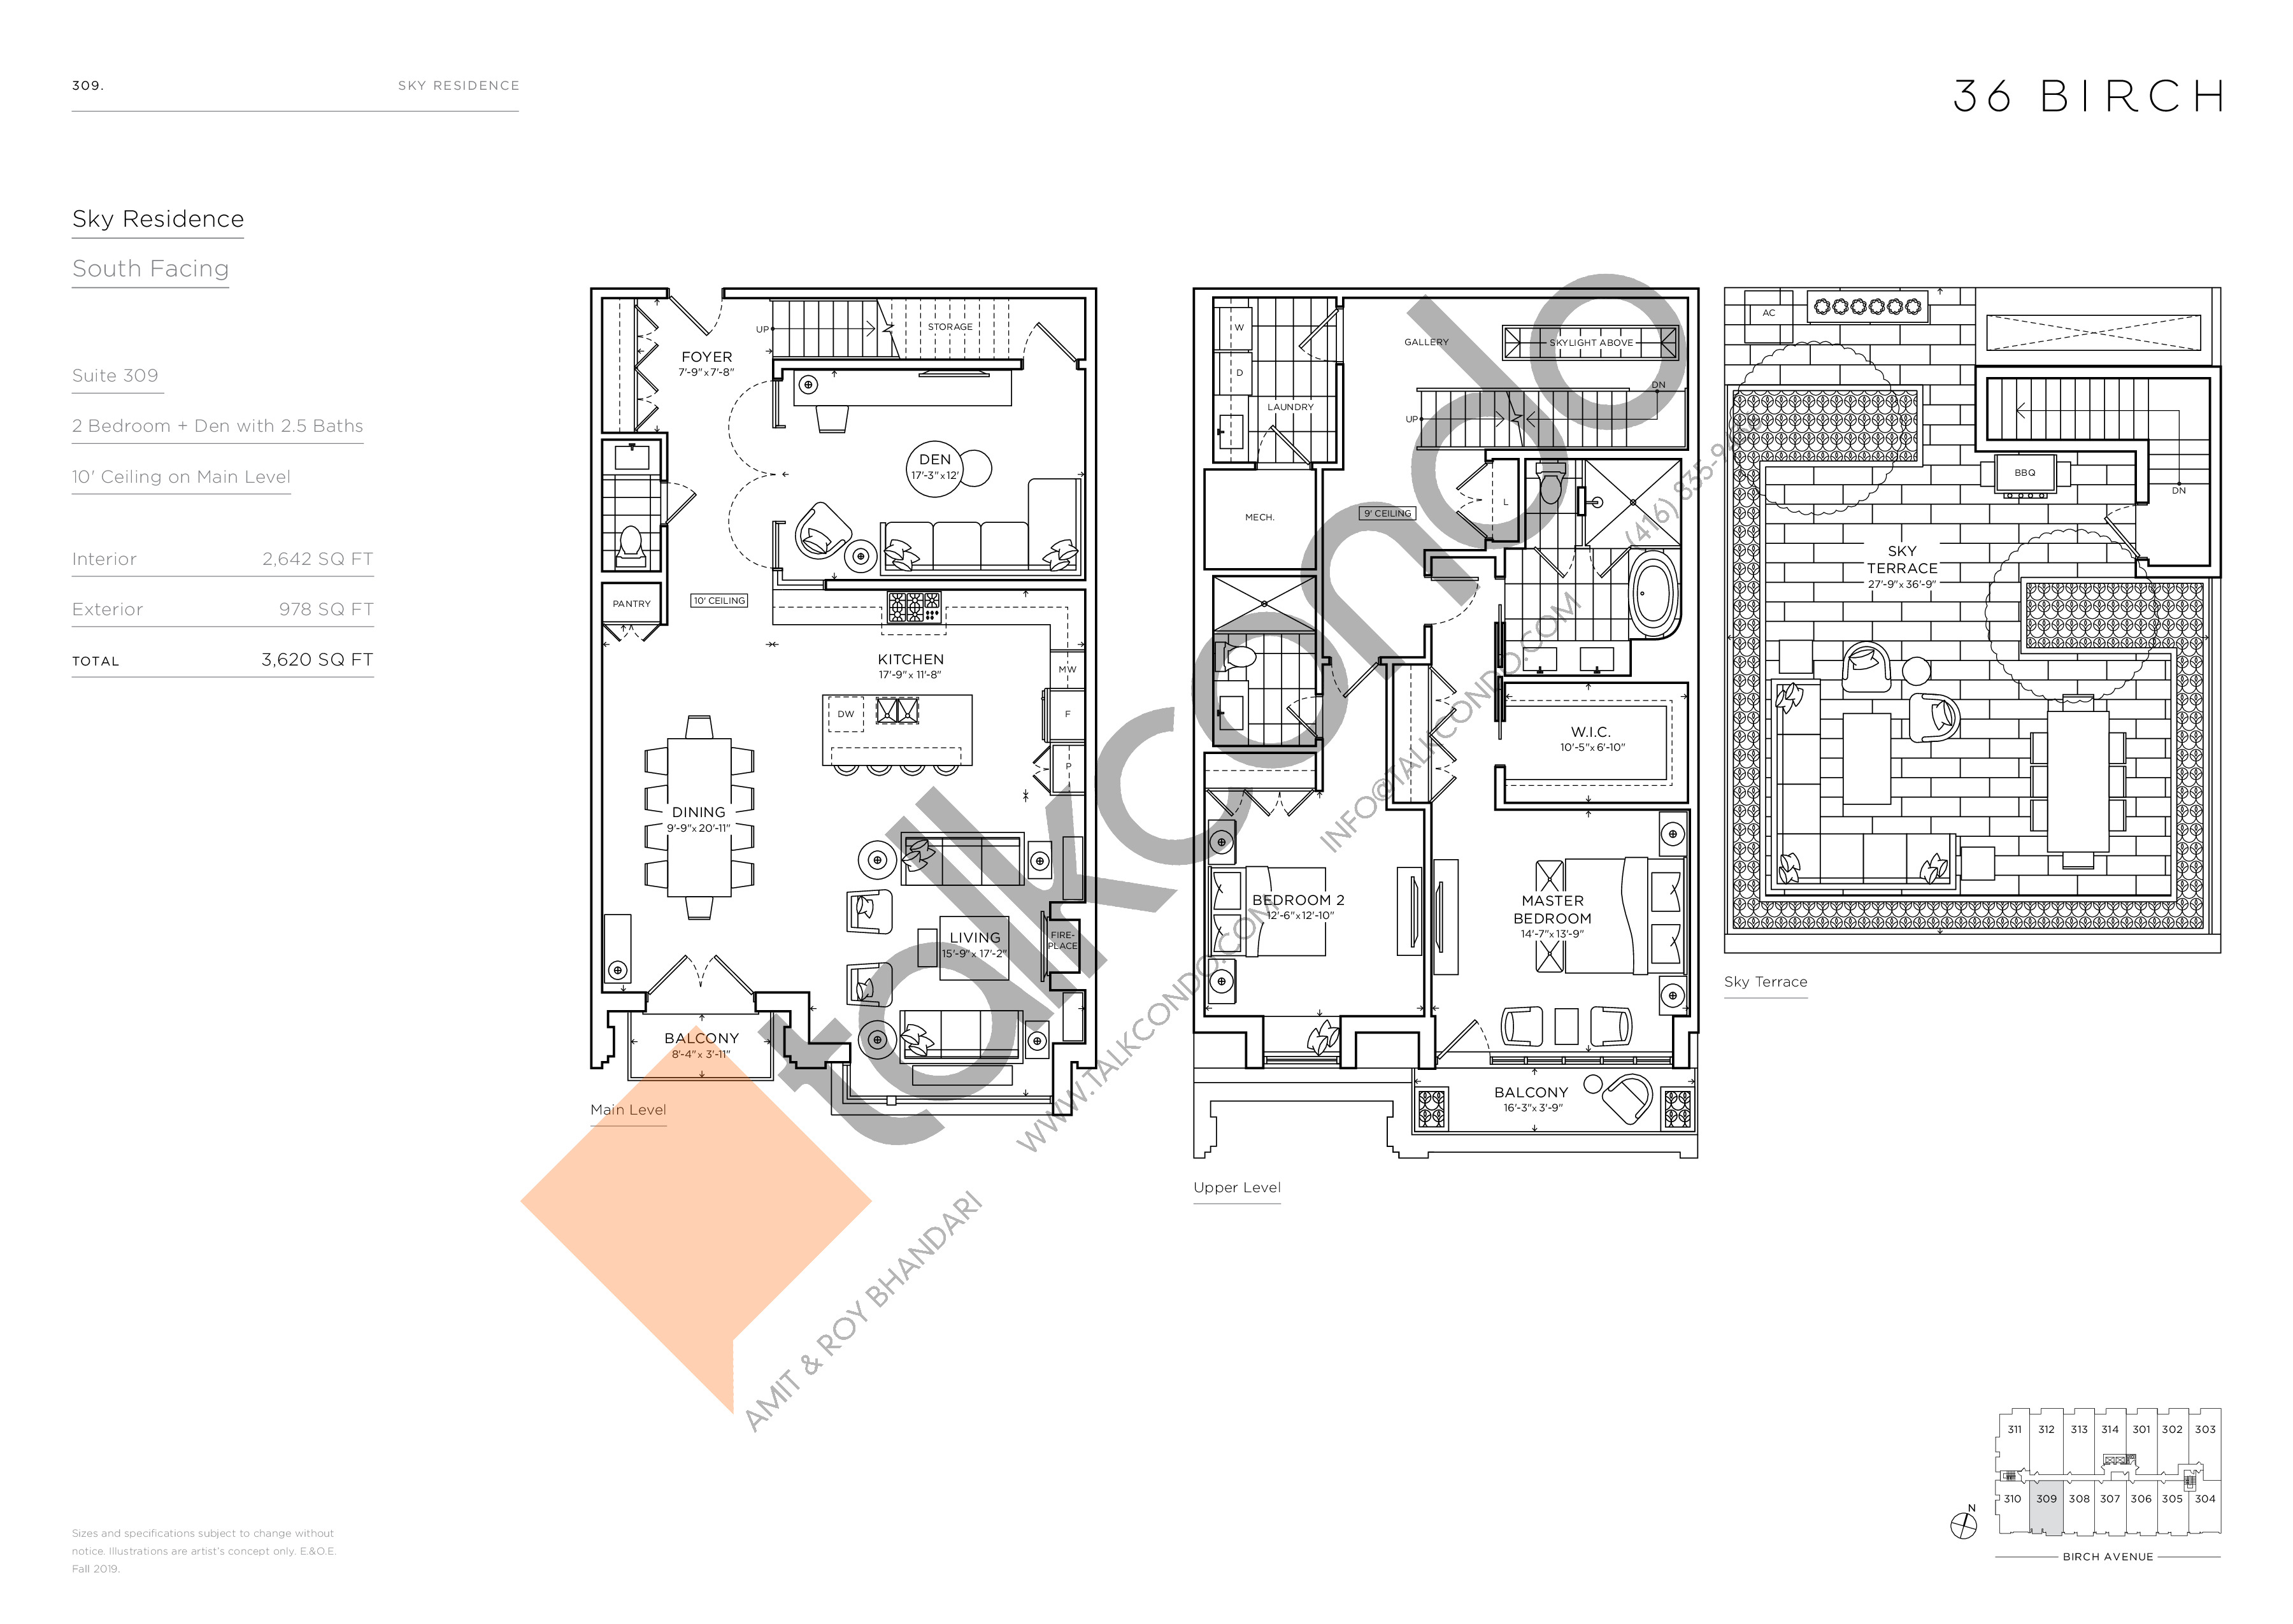 309 - Sky Residence Floor Plan at 36 Birch Condos - 2642 sq.ft